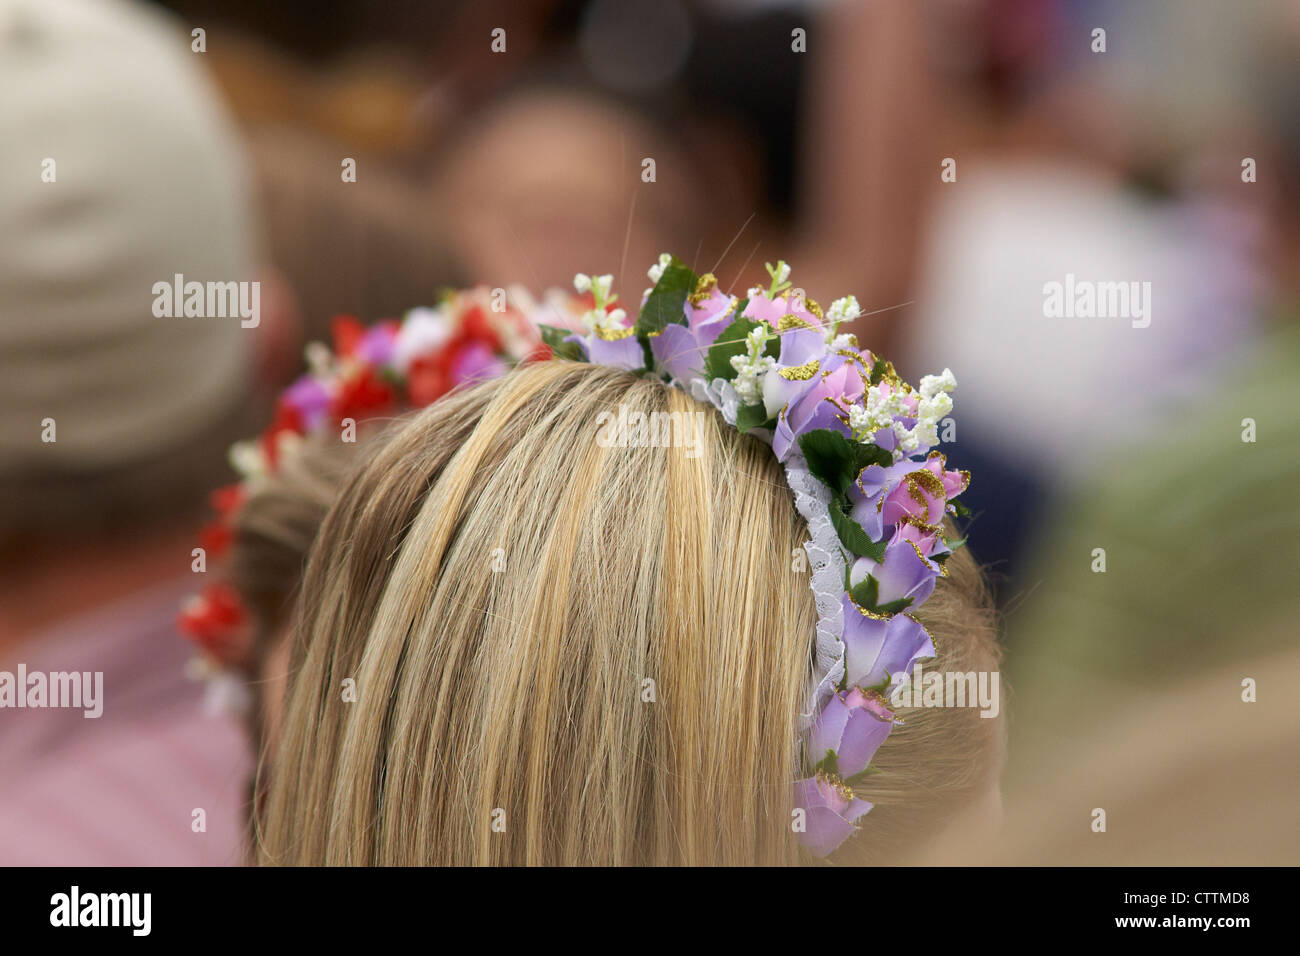 German style hair adornment - Stock Image